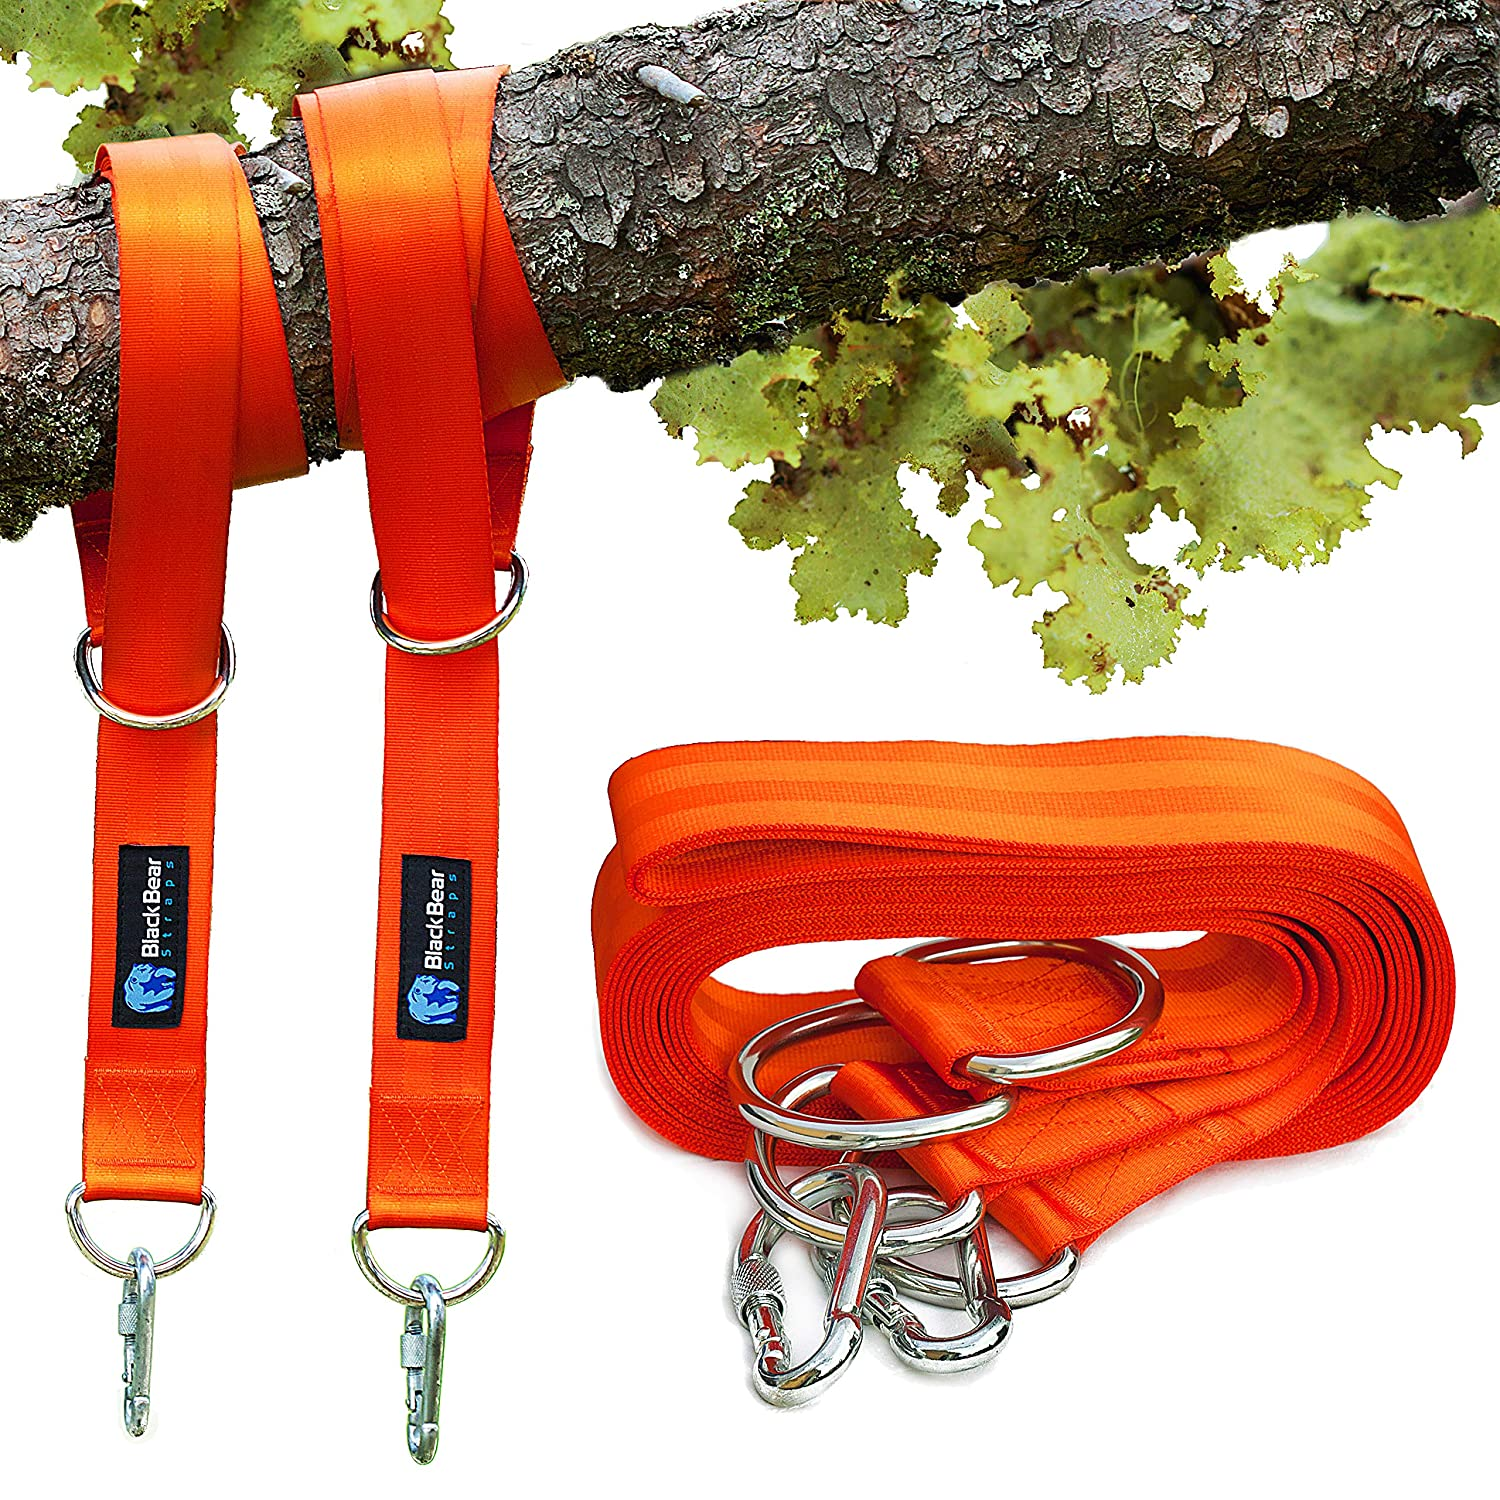 Tree Swing Straps Hanging Kit - BlackBear Straps - 10ft, Set of 2 - Heavy Duty Holds 2400lbs - Two Stainless Steel Carabiners - Universal Easy Hang Tree Straps, Connect to Any Swing Set or Hammock BlackBear Products